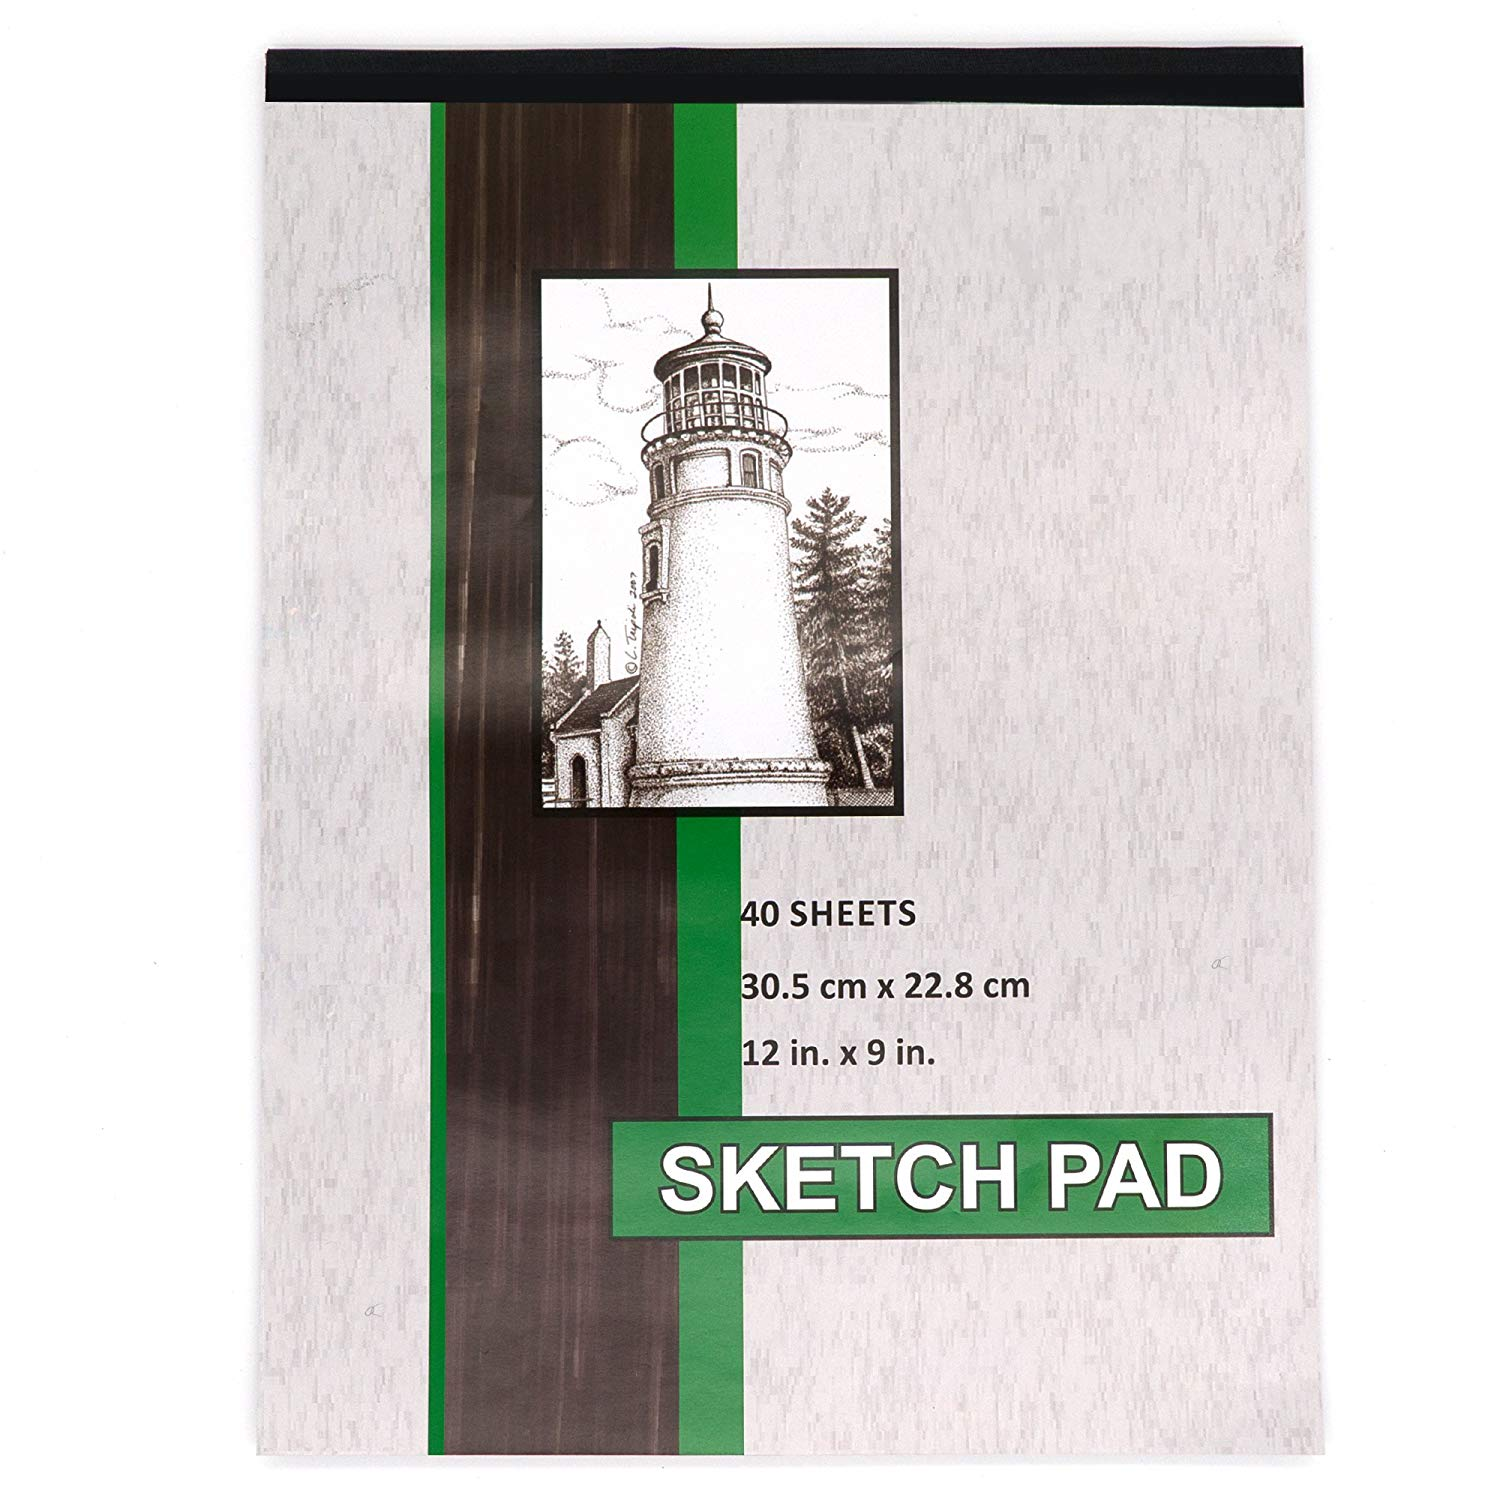 Emraw 40 Sheets Sketch pad Artist Pro - Art Pad for Sketching Ink Sketch Book, Coloring Notebook Spiral Notebook Drawing Paper, Drawing Pad Art Supplies